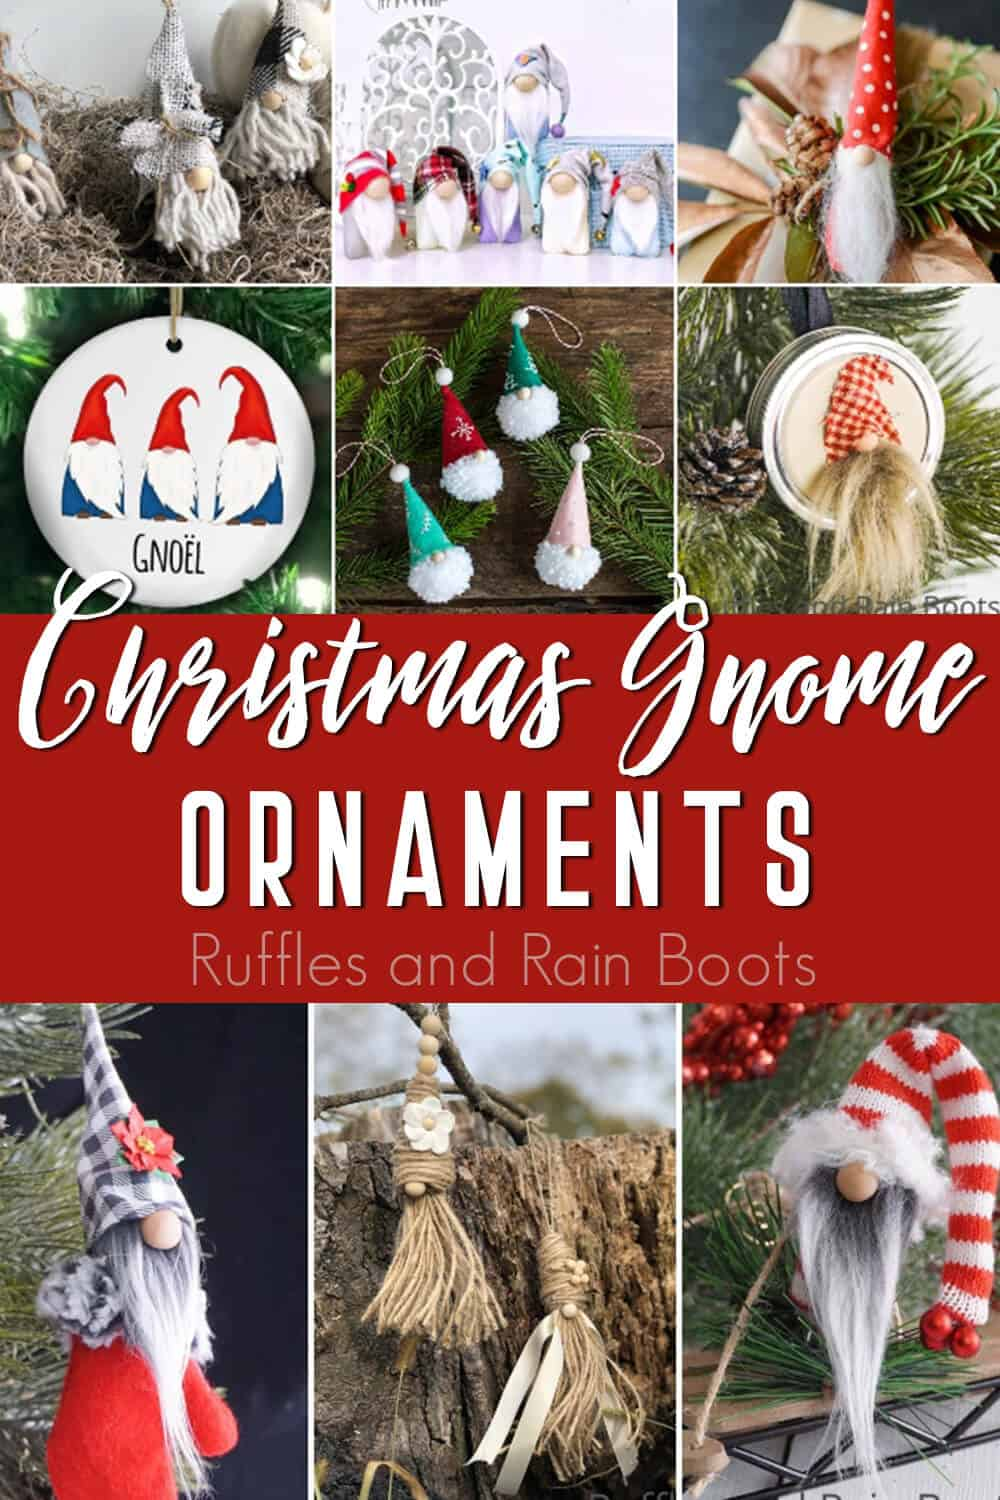 photo collage of winter gnome ornaments with text which reads Christmas gnome ornaments